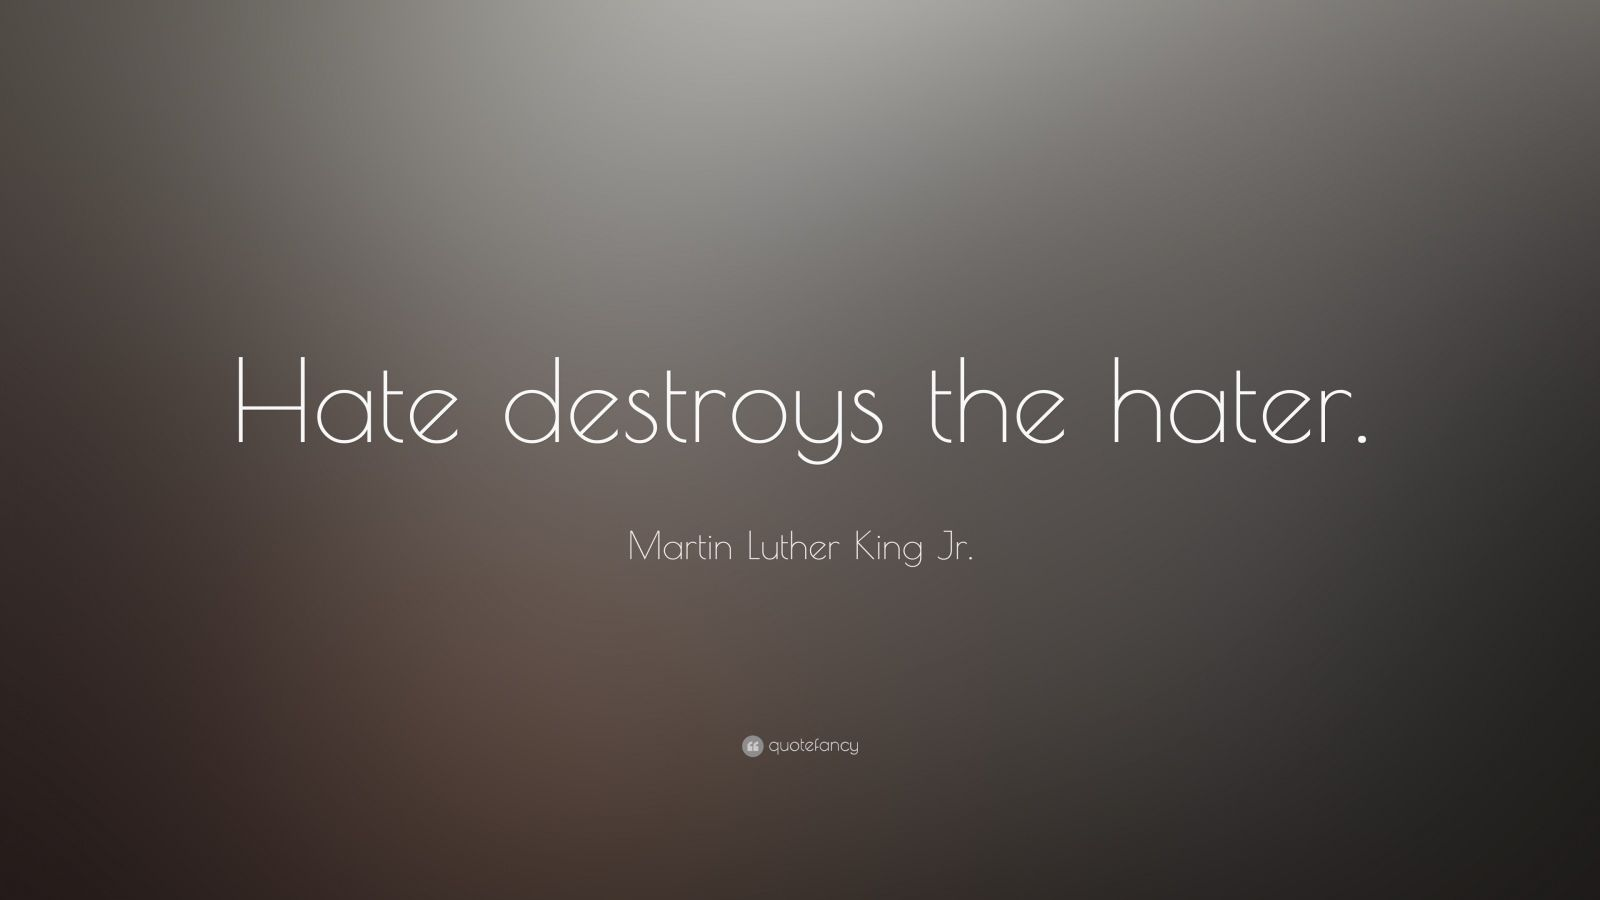 Images Of Martin Luther King Quotes Martin Luther King Jrquotes 100 Wallpapers  Quotefancy